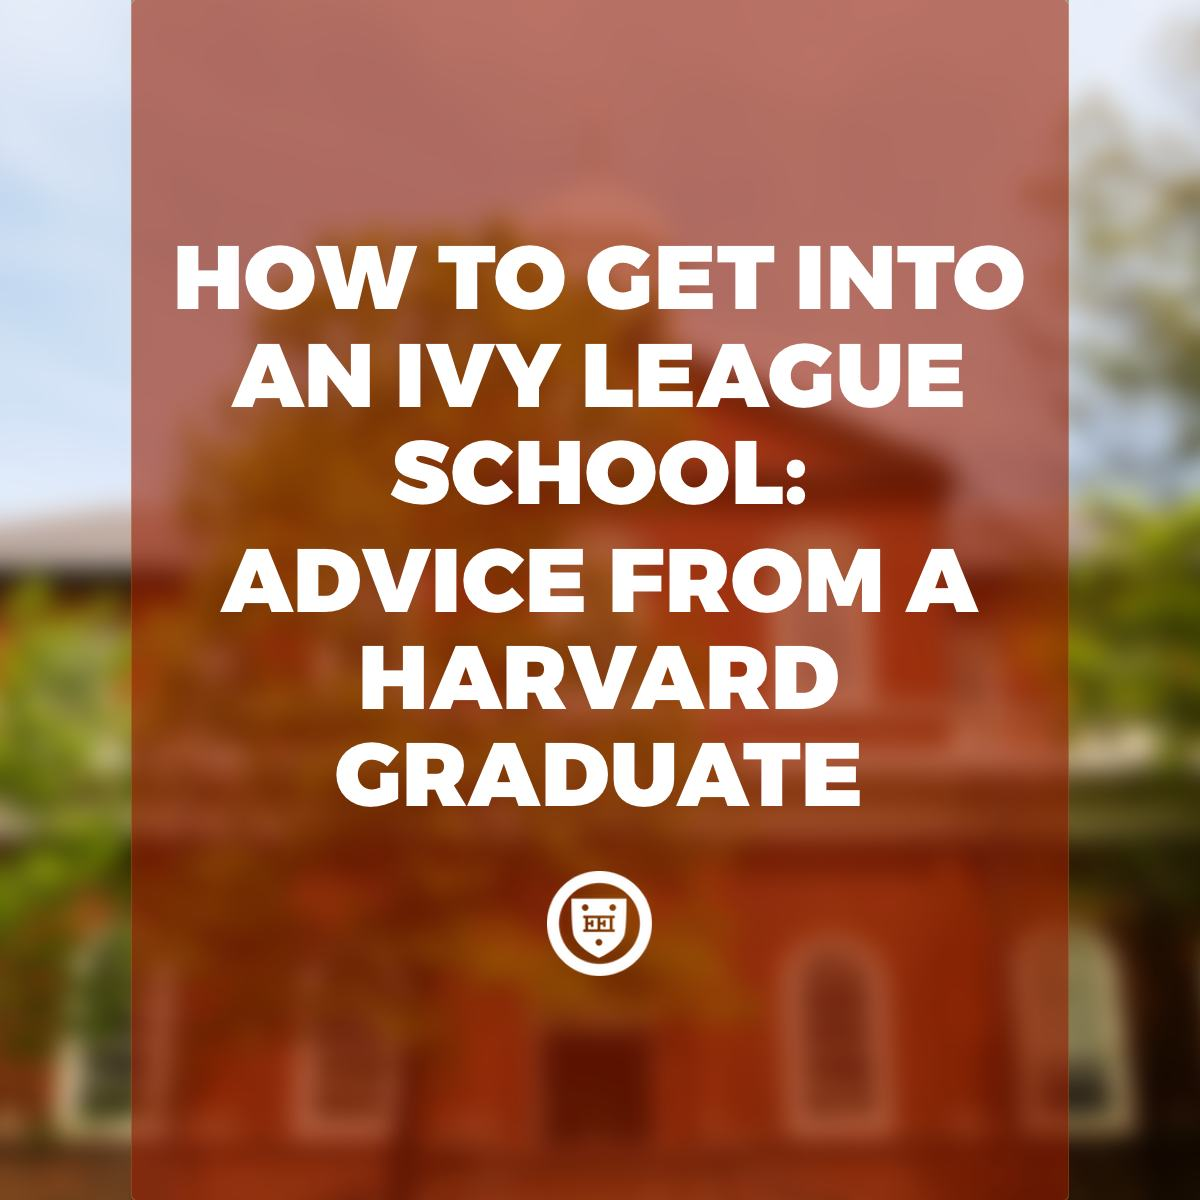 How to Get Into an Ivy League School: Advice from a Harvard